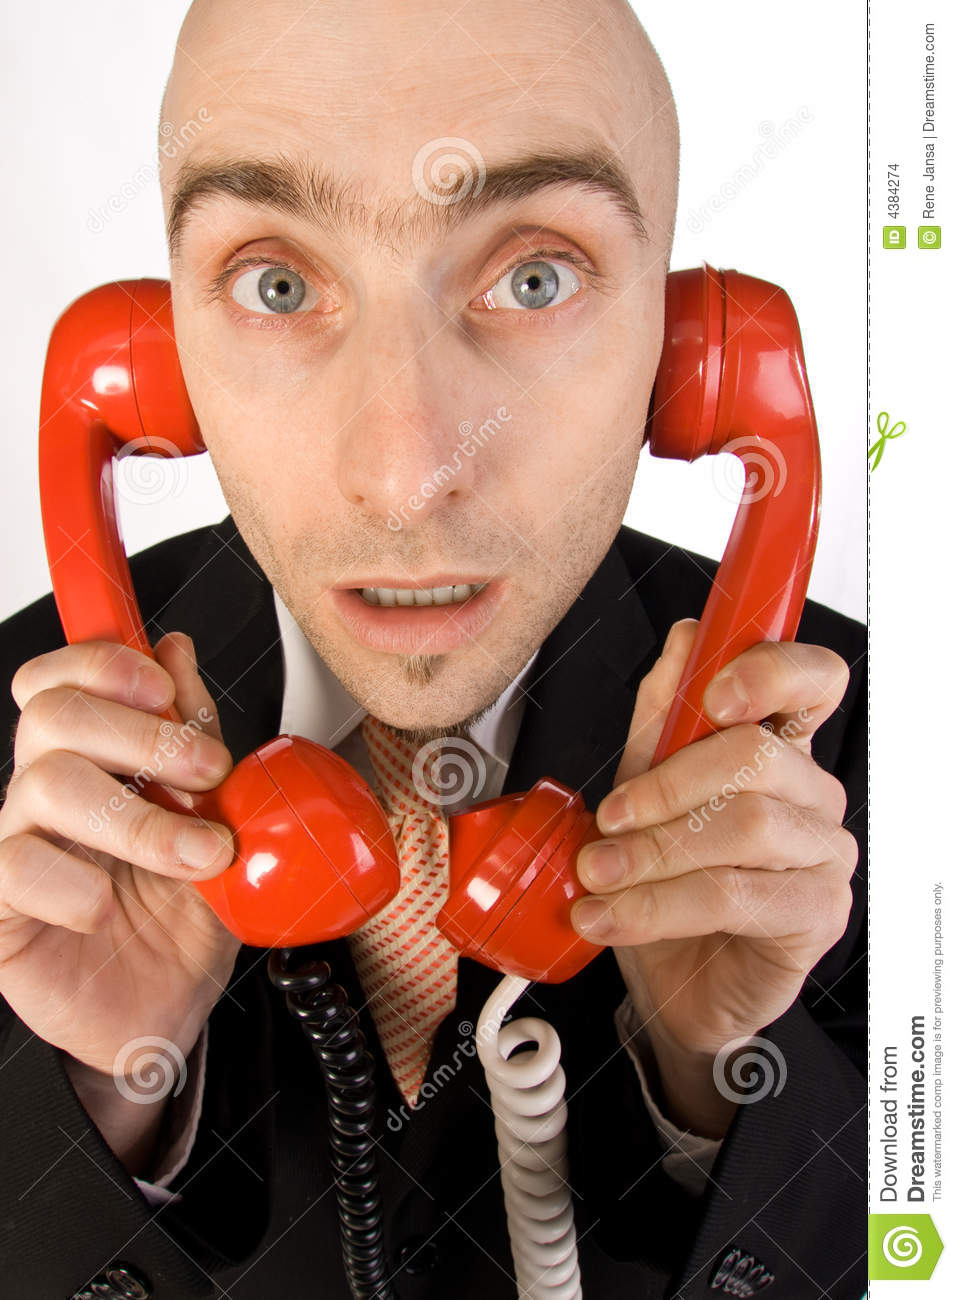 Too Many Phone Calls Stock Images